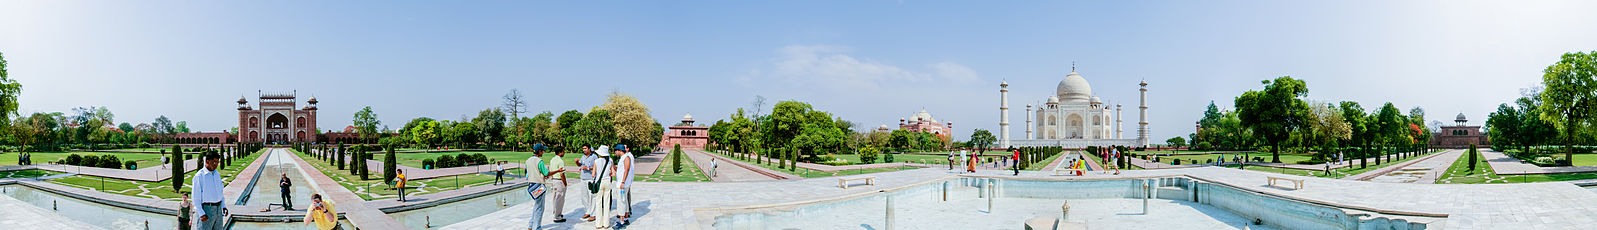 A panoramic view looking 360 degreas around the Taj Mahal taken in 2005.